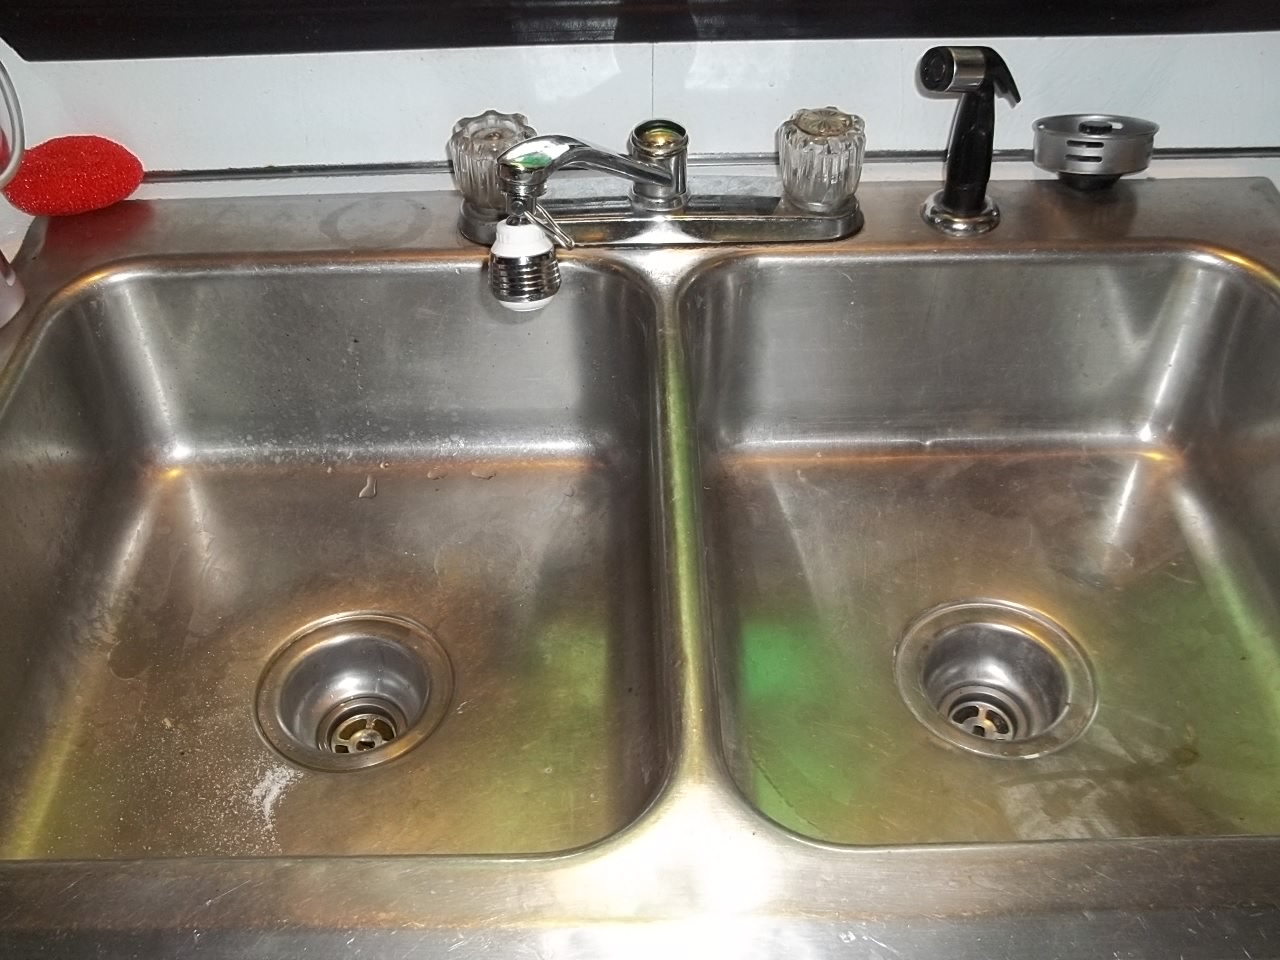 Fancy How To Unclog A Double Kitchen Sink Drain | Dengarden with regard to New How To Unclog A Double Kitchen Sink